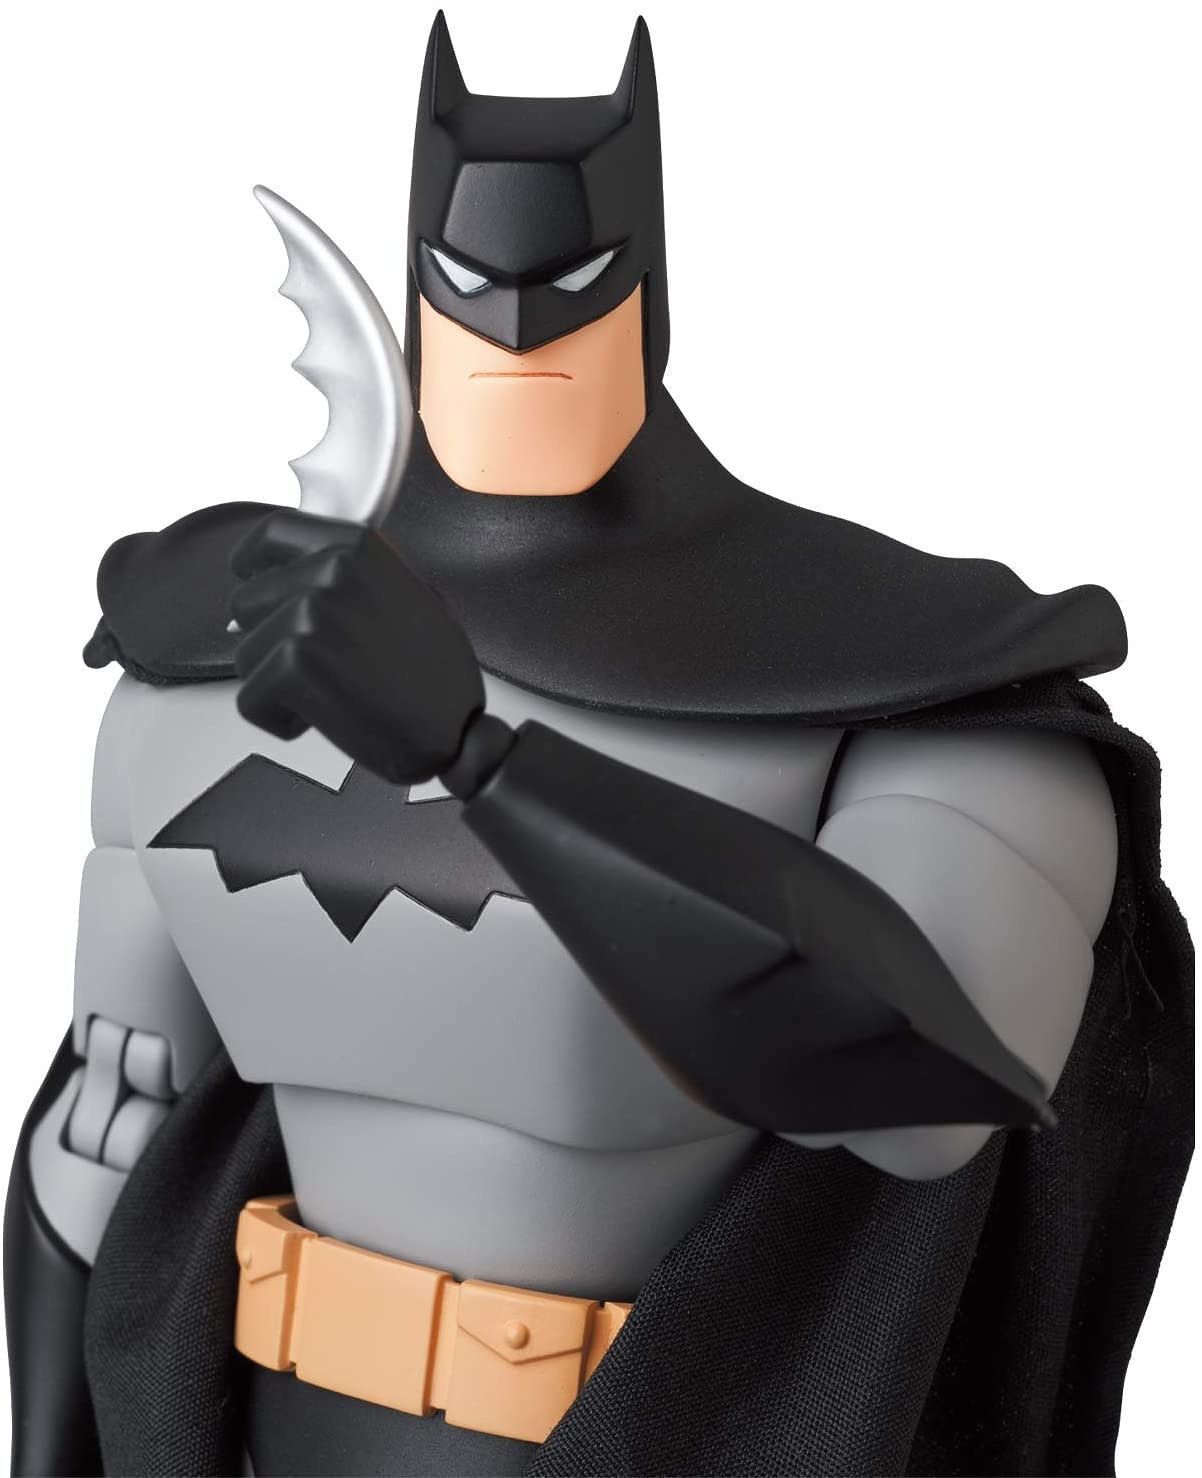 Medicom - MAFEX No. 137 - DC Comics - The New Batman Adventures - Batman